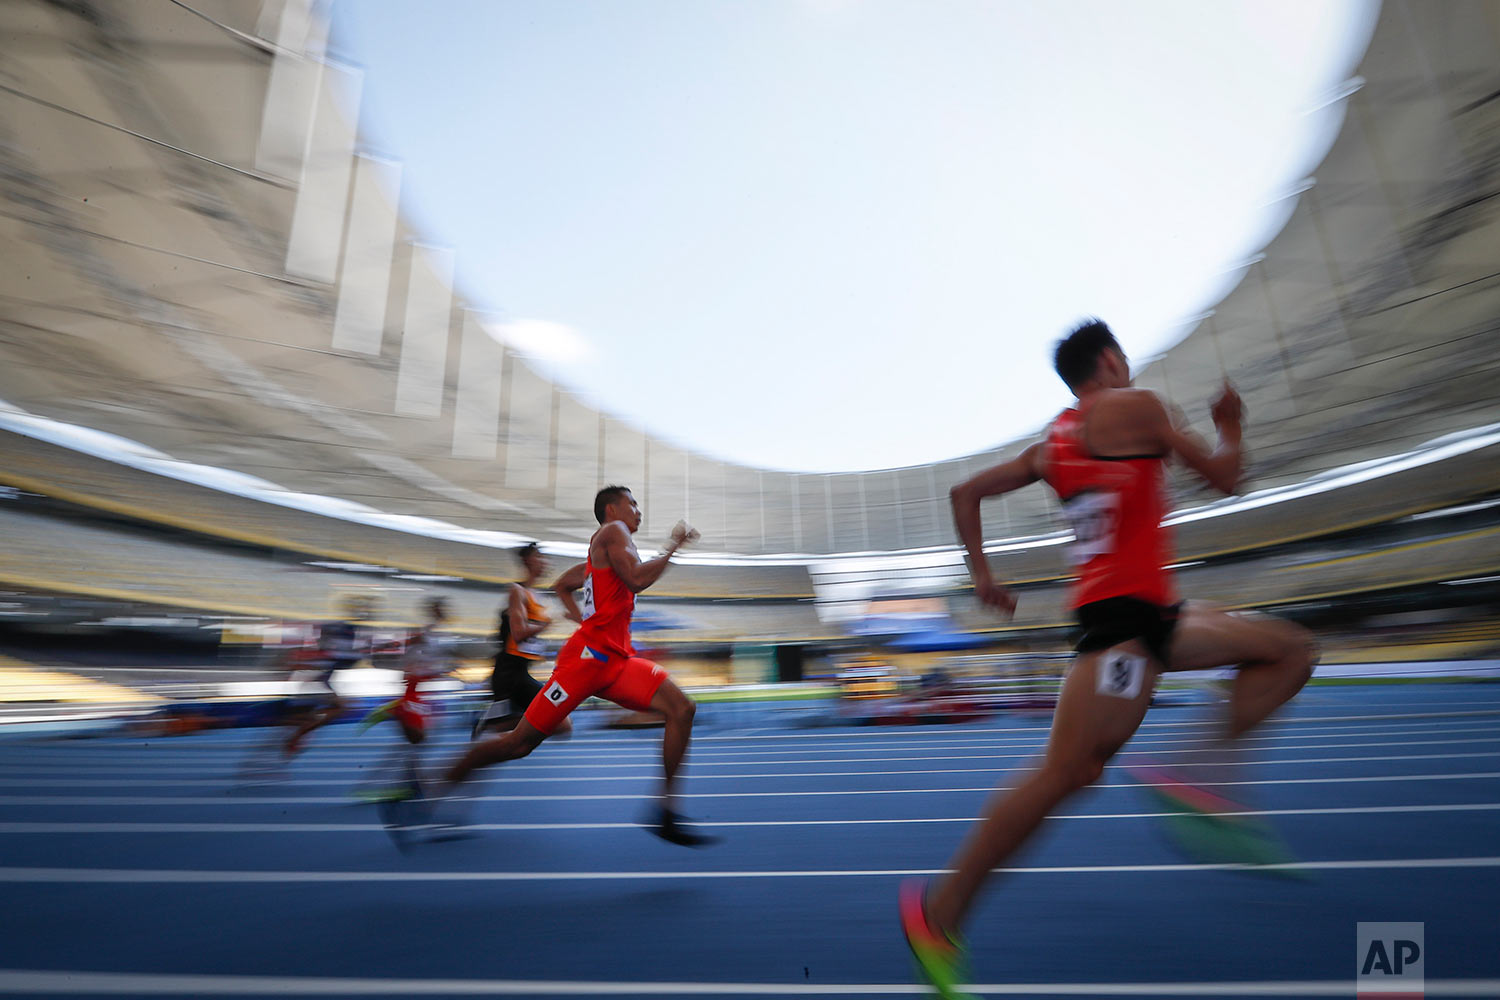 Runners compete during the Men's 400-meter semi-final at the 29th South East Asian Games in Kuala Lumpur, Malaysia, Thursday, Aug. 24, 2017. (AP Photo/Vincent Thian)